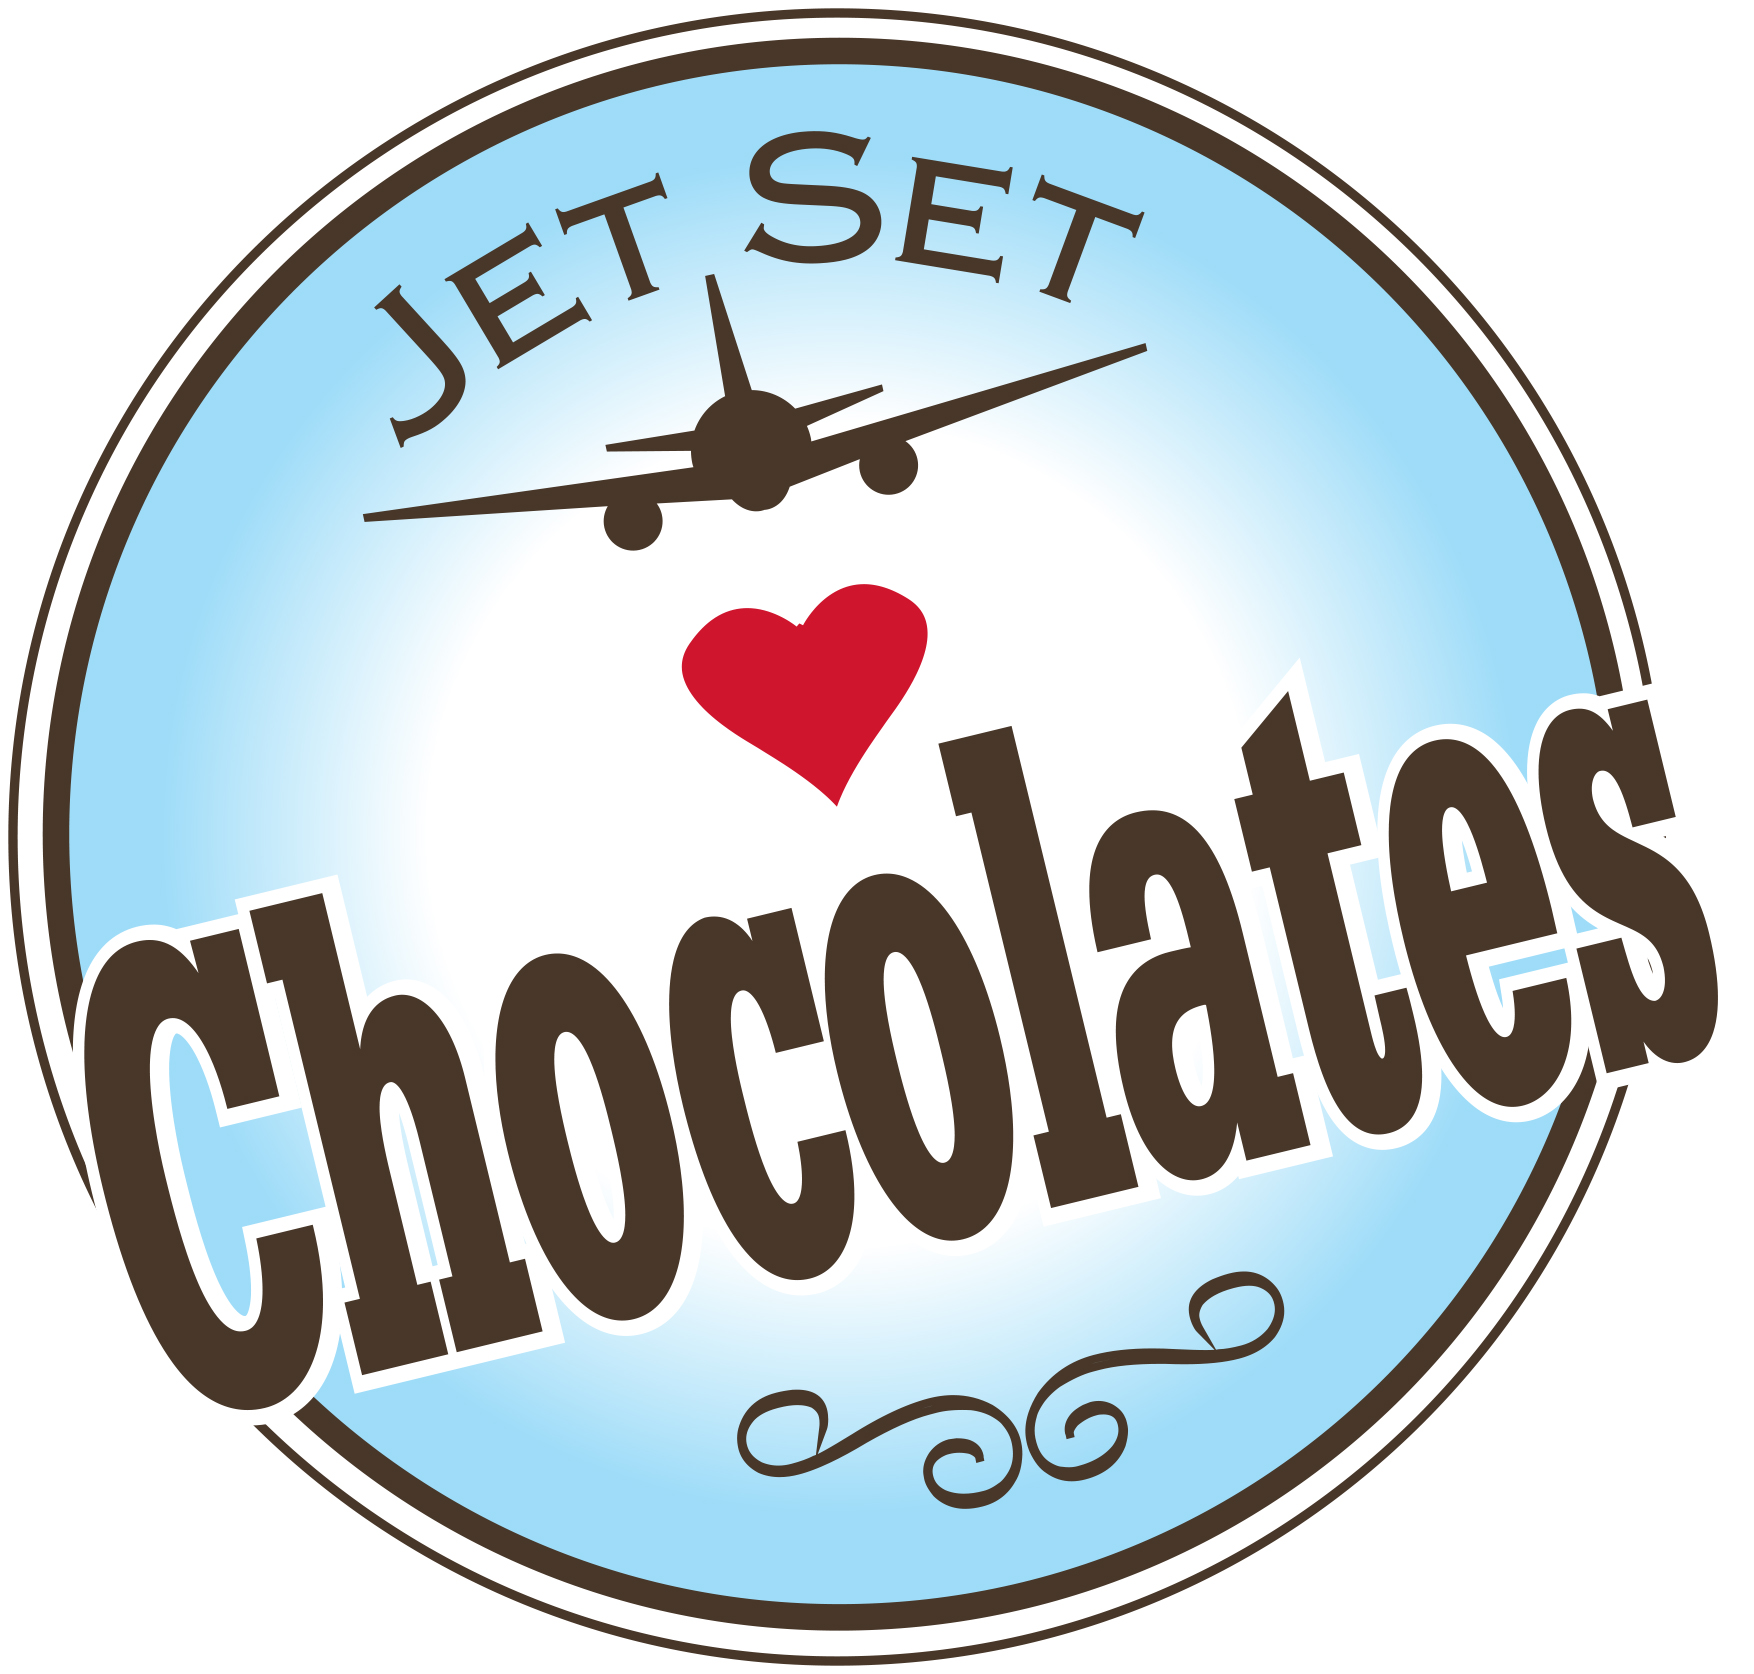 Jet Set Chocolates